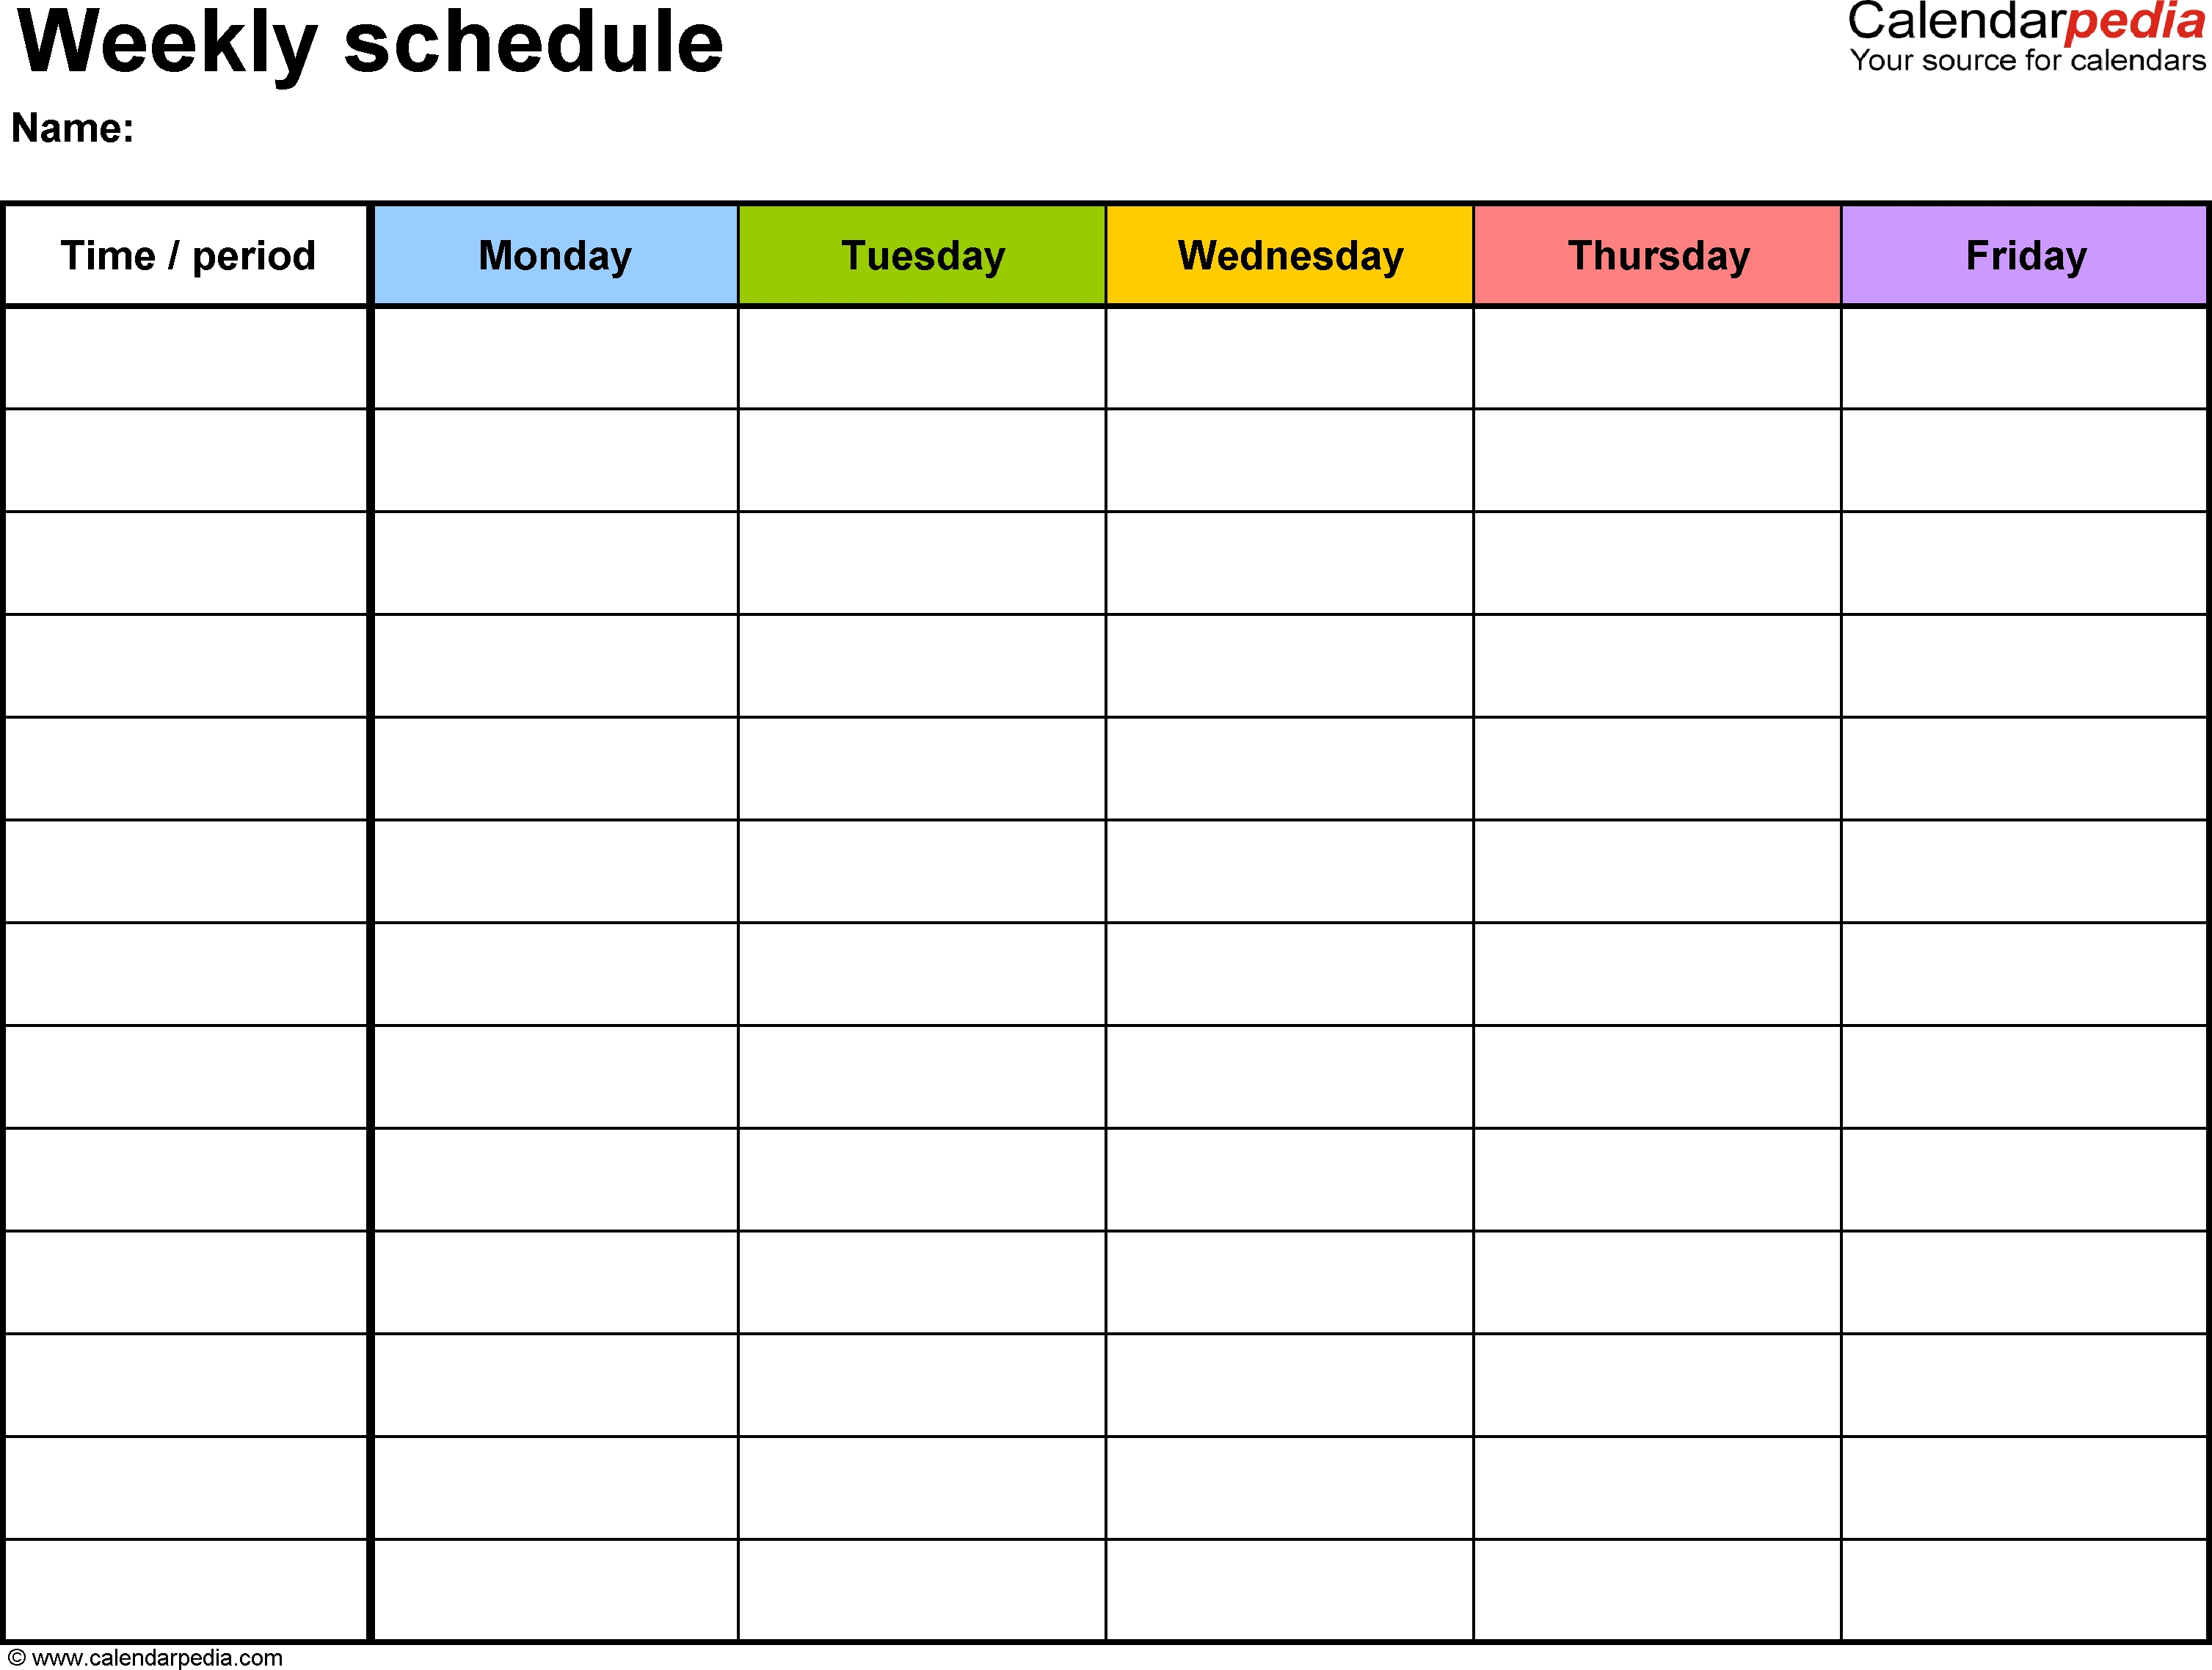 Free Weekly Schedule Templates For Word - 18 Templates in Combined Monthly And Weekly Calendar Template Word